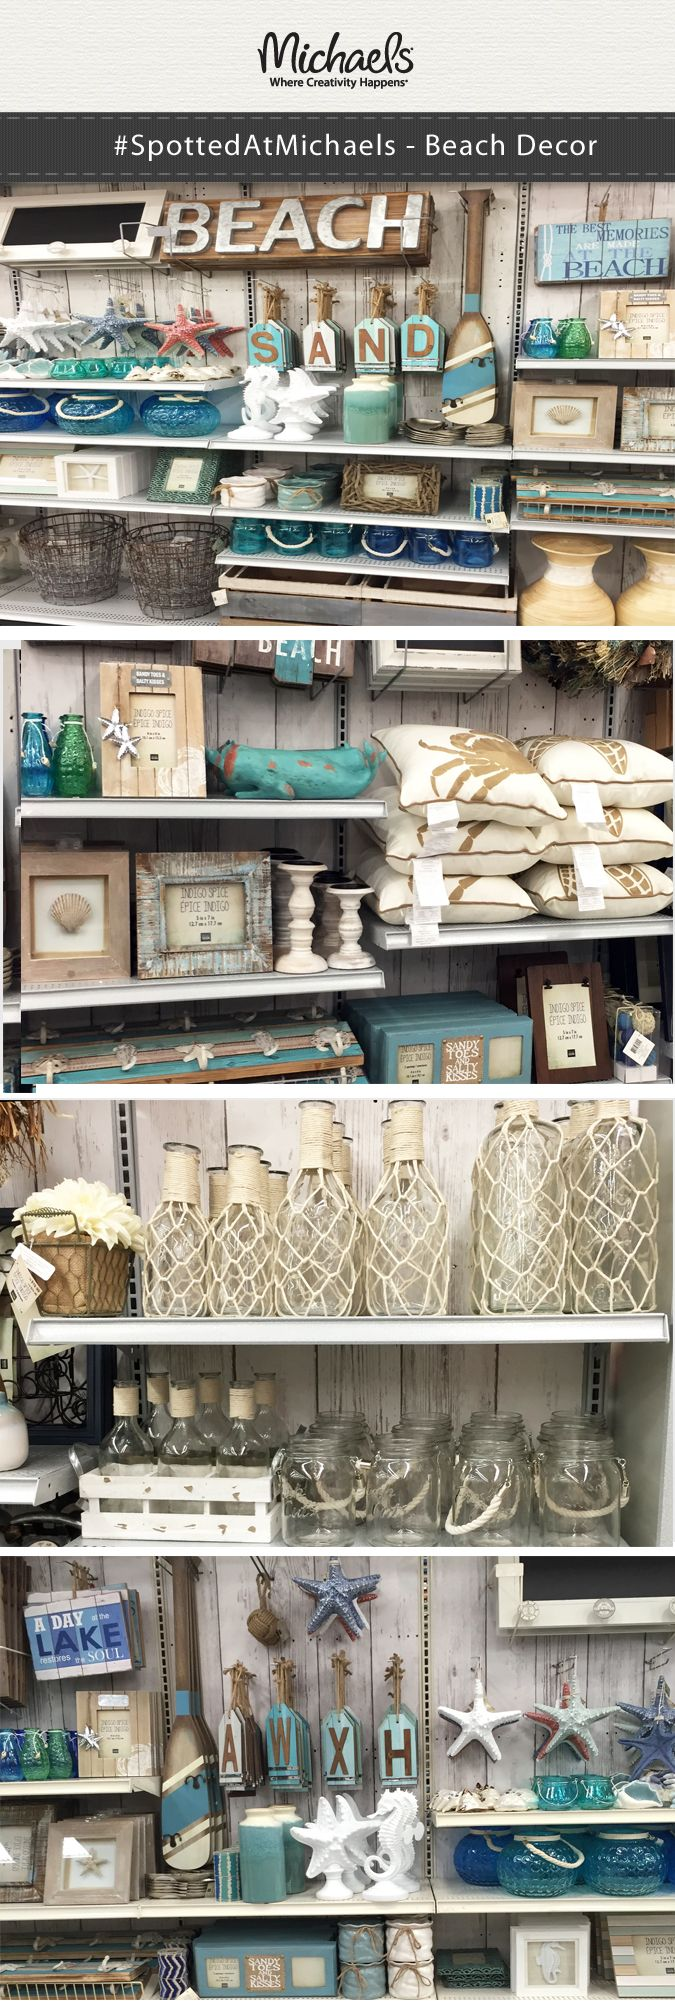 SpottedAtMichaels Itu0027s Easy To Decorate Your Home, Office Or Cottage With  Beach Inspired Decor!